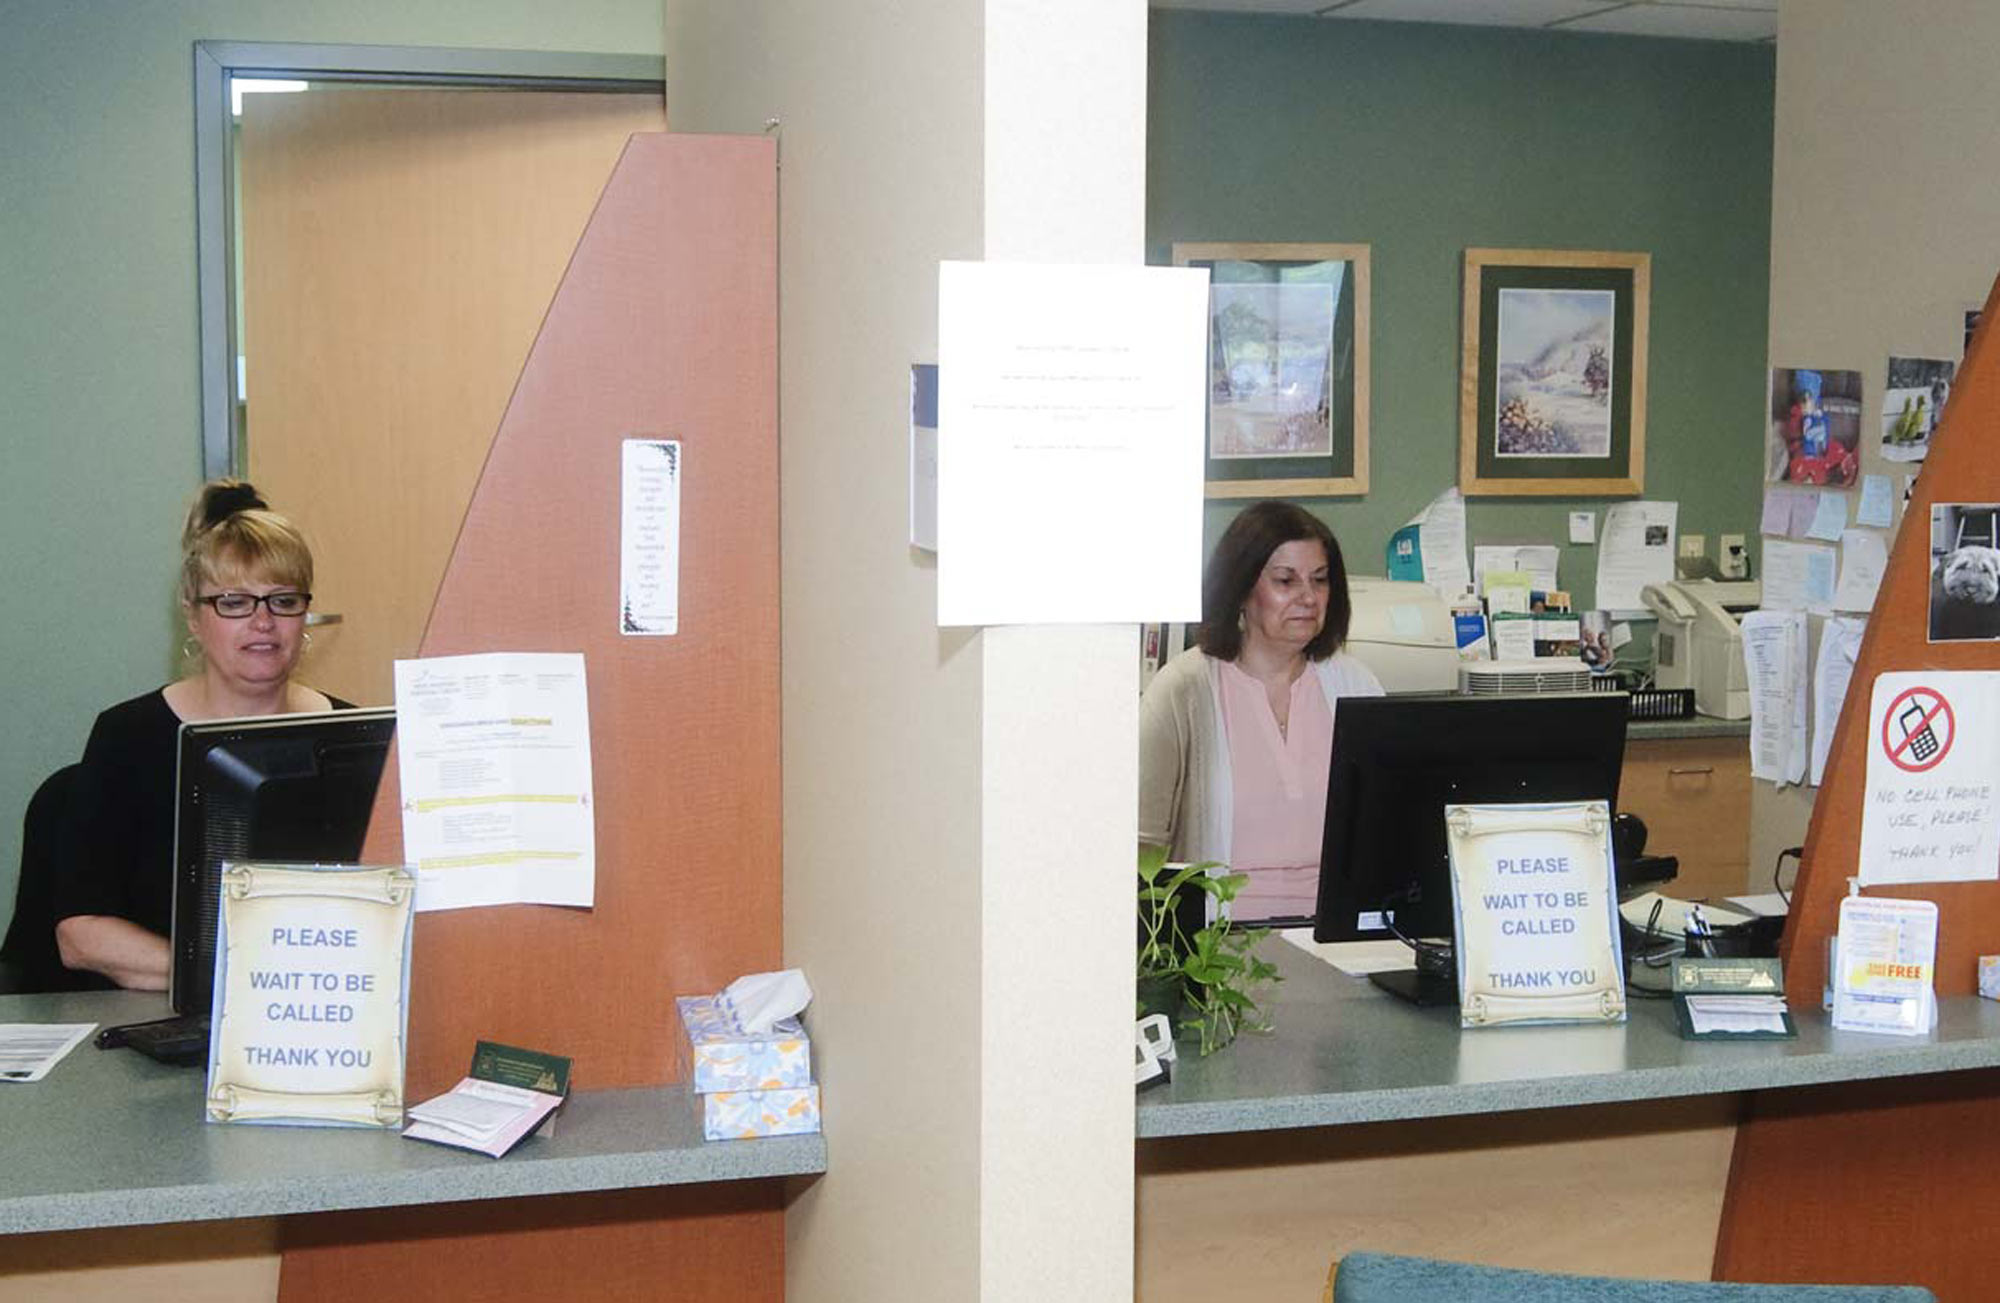 Images from the New Milford Medical Group Gallery